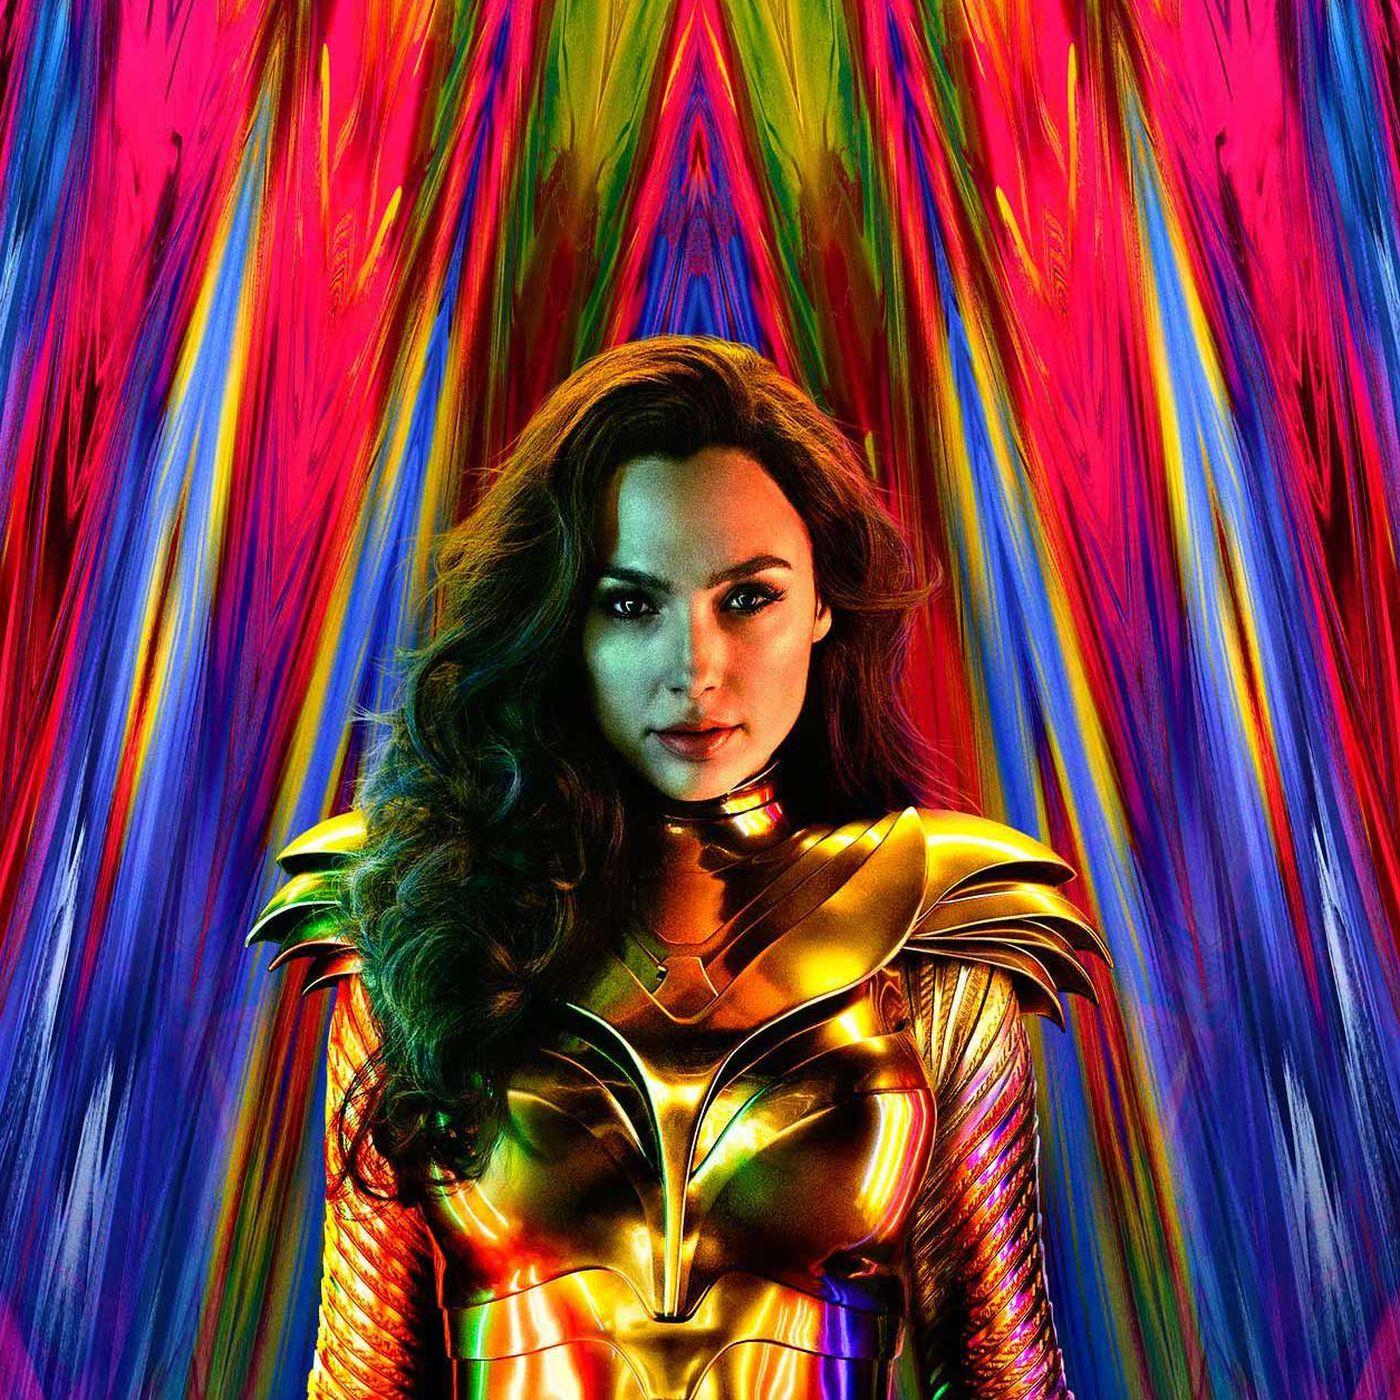 Wonder Woman director shares new poster with Gal Gadot in new